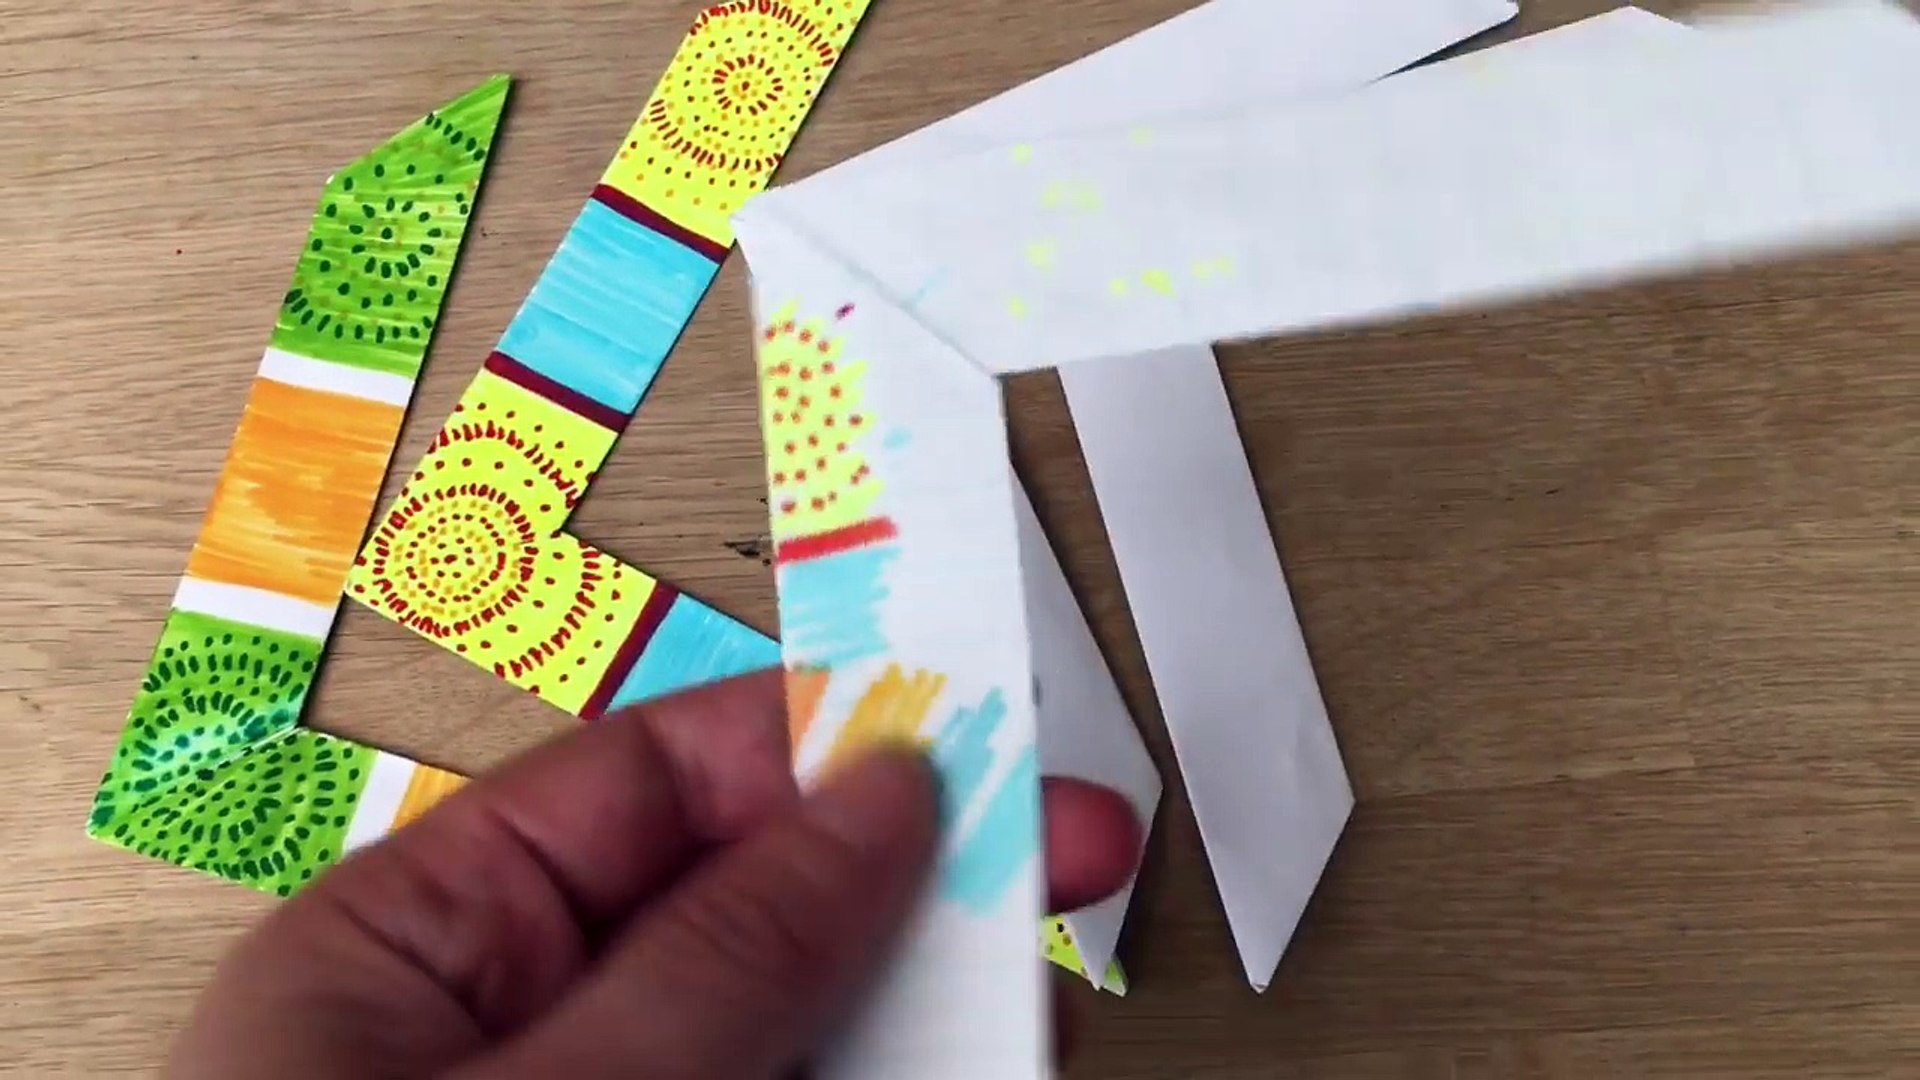 Heres How To Make Paper Planes That Fly 10000 Feet And Boomerang ... | 1080x1920